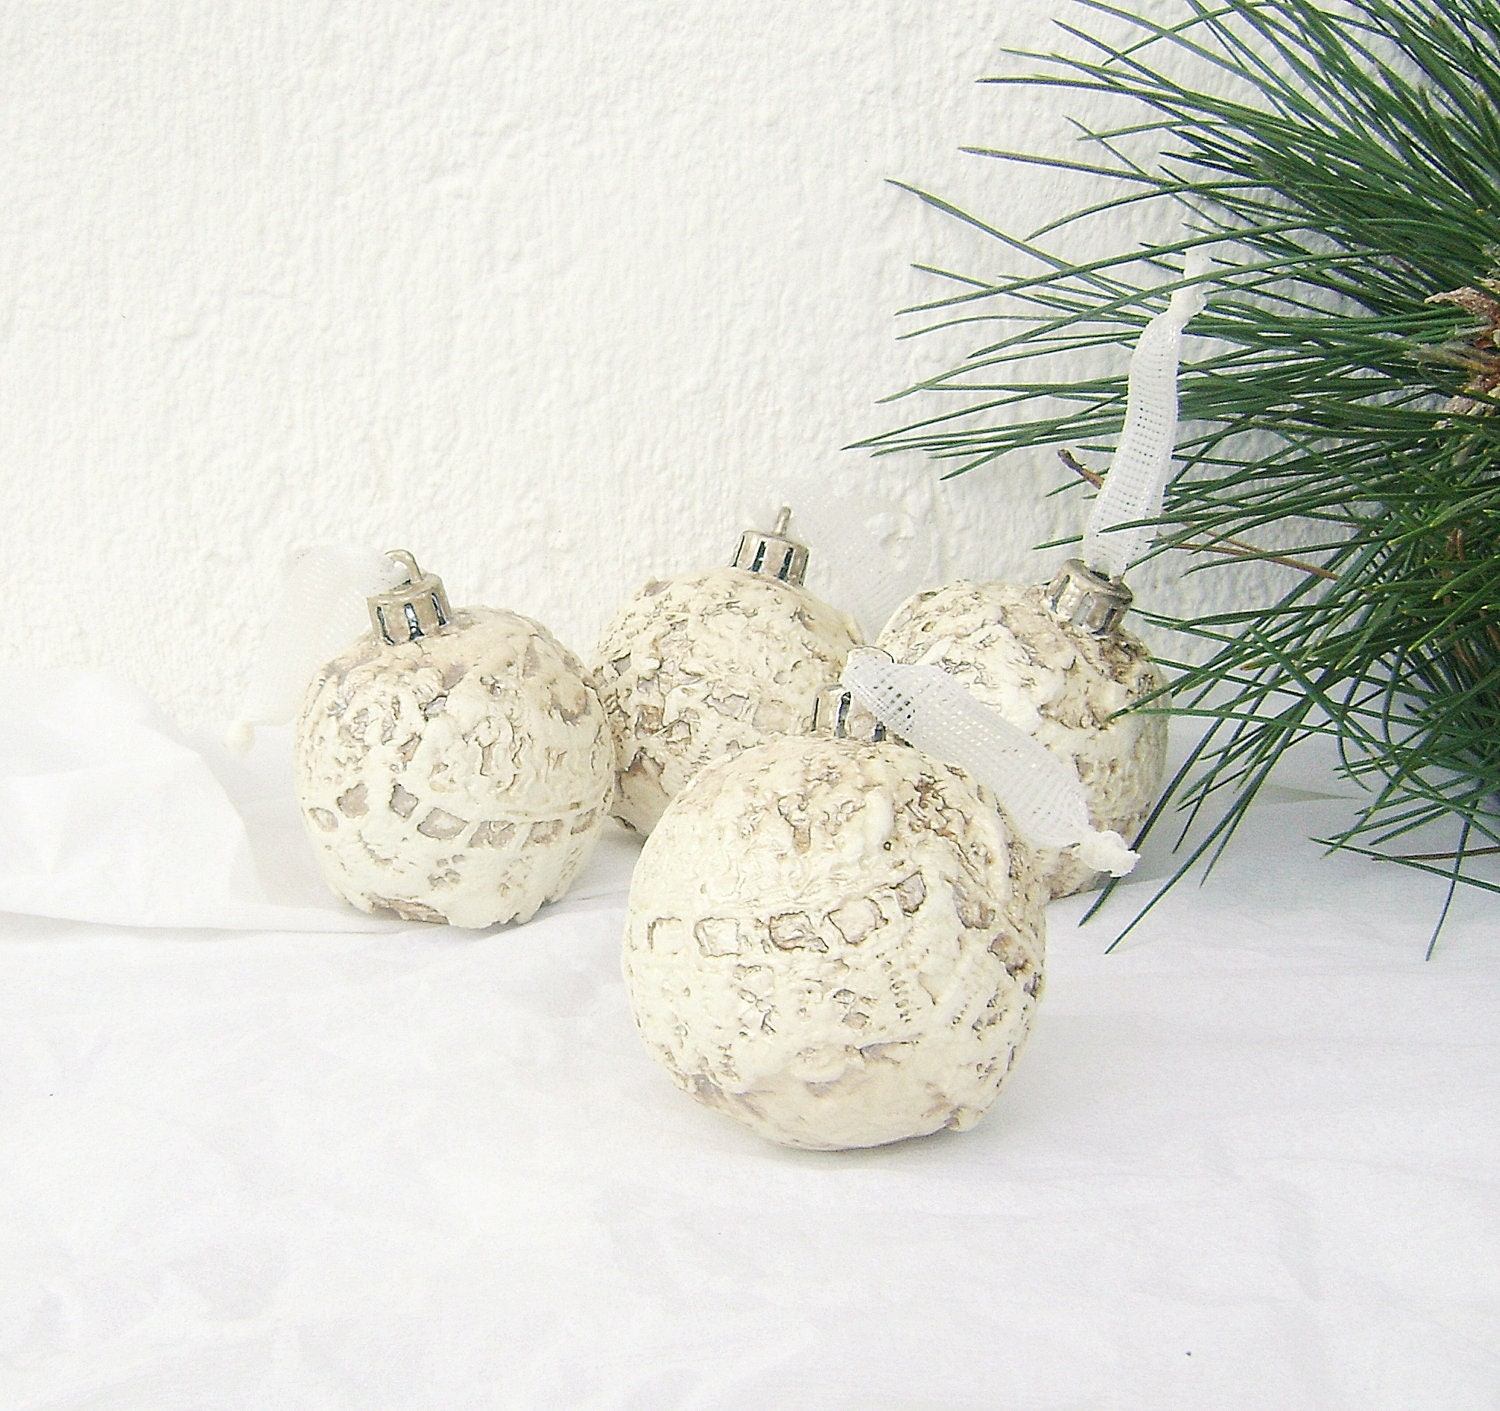 Set of Four Christmas Ornaments Balls  / Christmas  Holiday Plastic Balls  Lace Ornaments / Vintage Style Christmas Home Decor - NataliaDecor